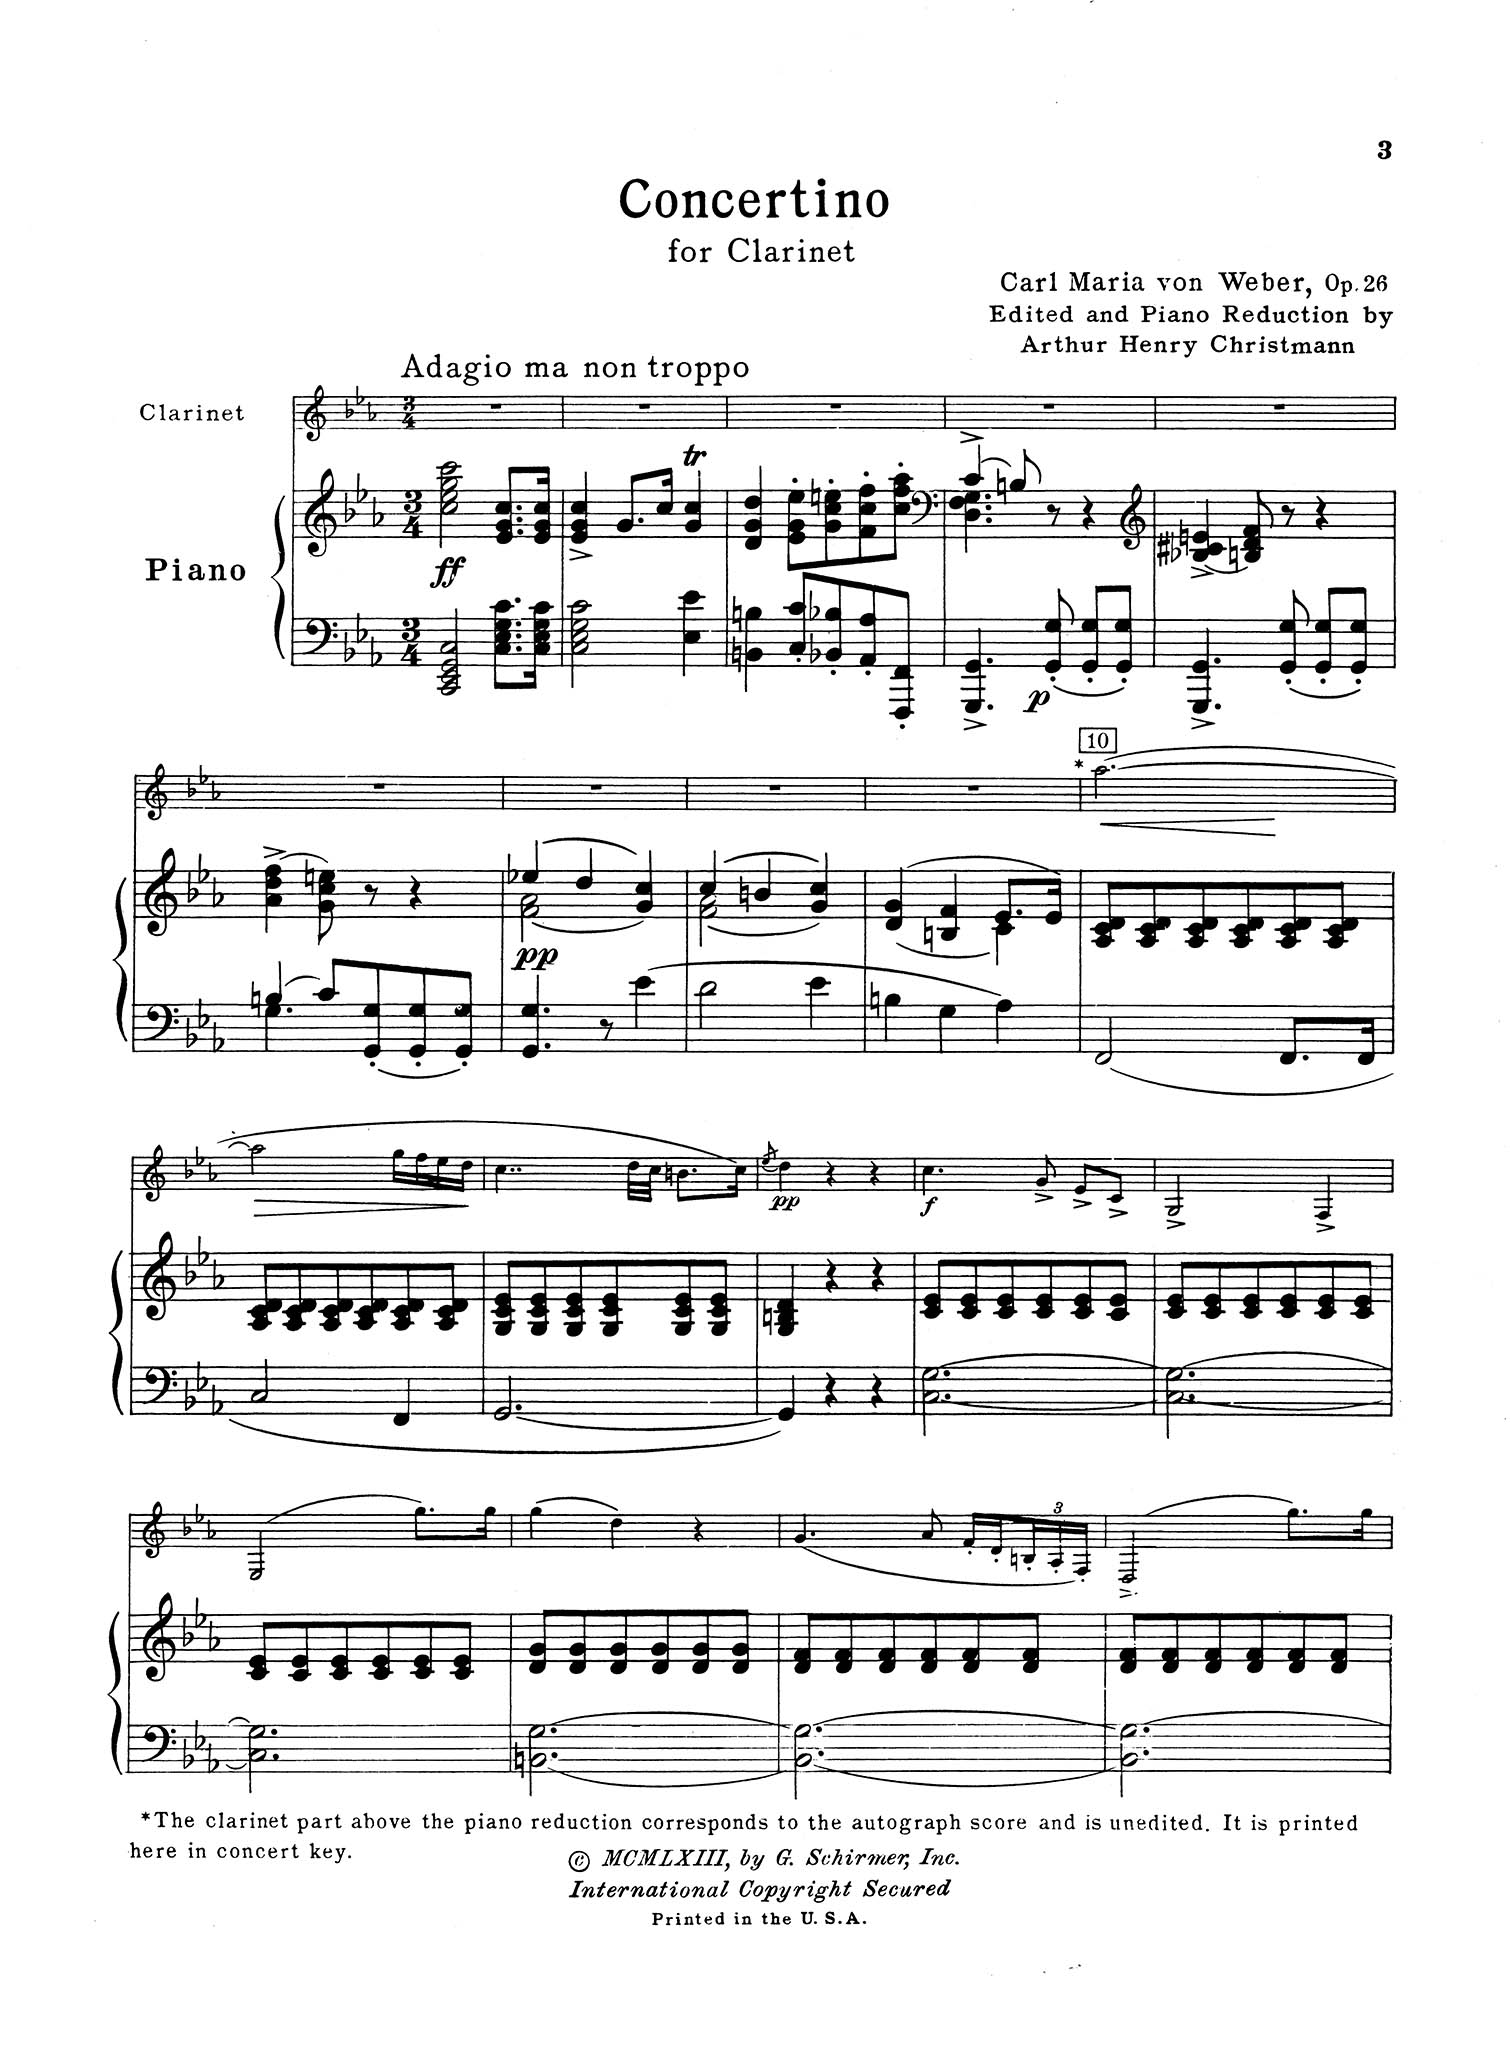 Concertino in E-flat Major, Op. 26, J. 109 Score